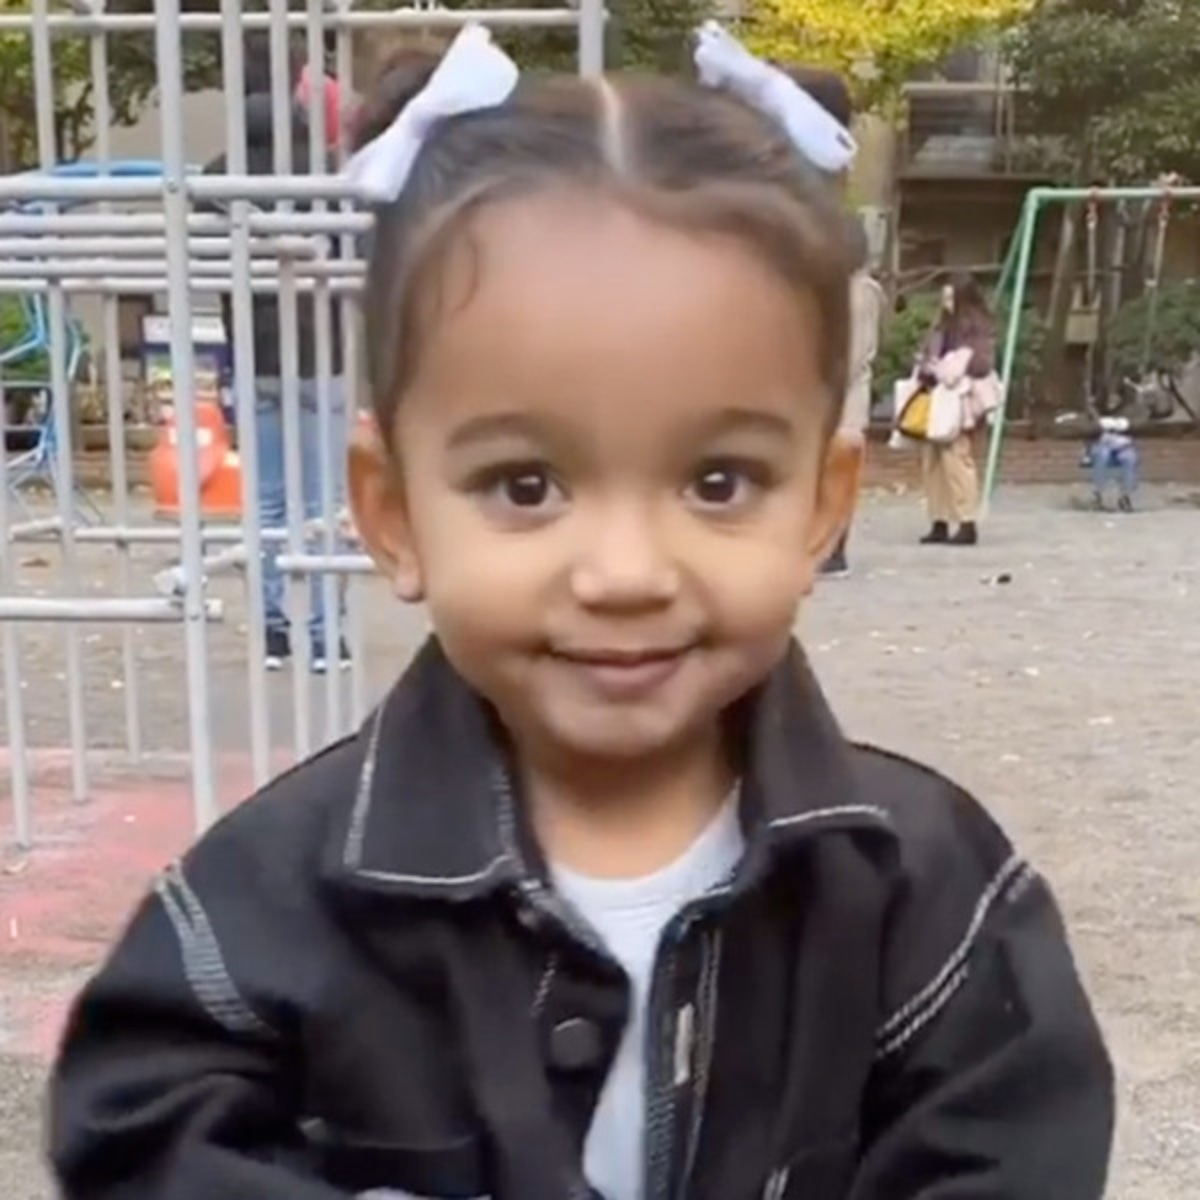 Chicago West S Birthday Wish Will Melt Your Heart E News